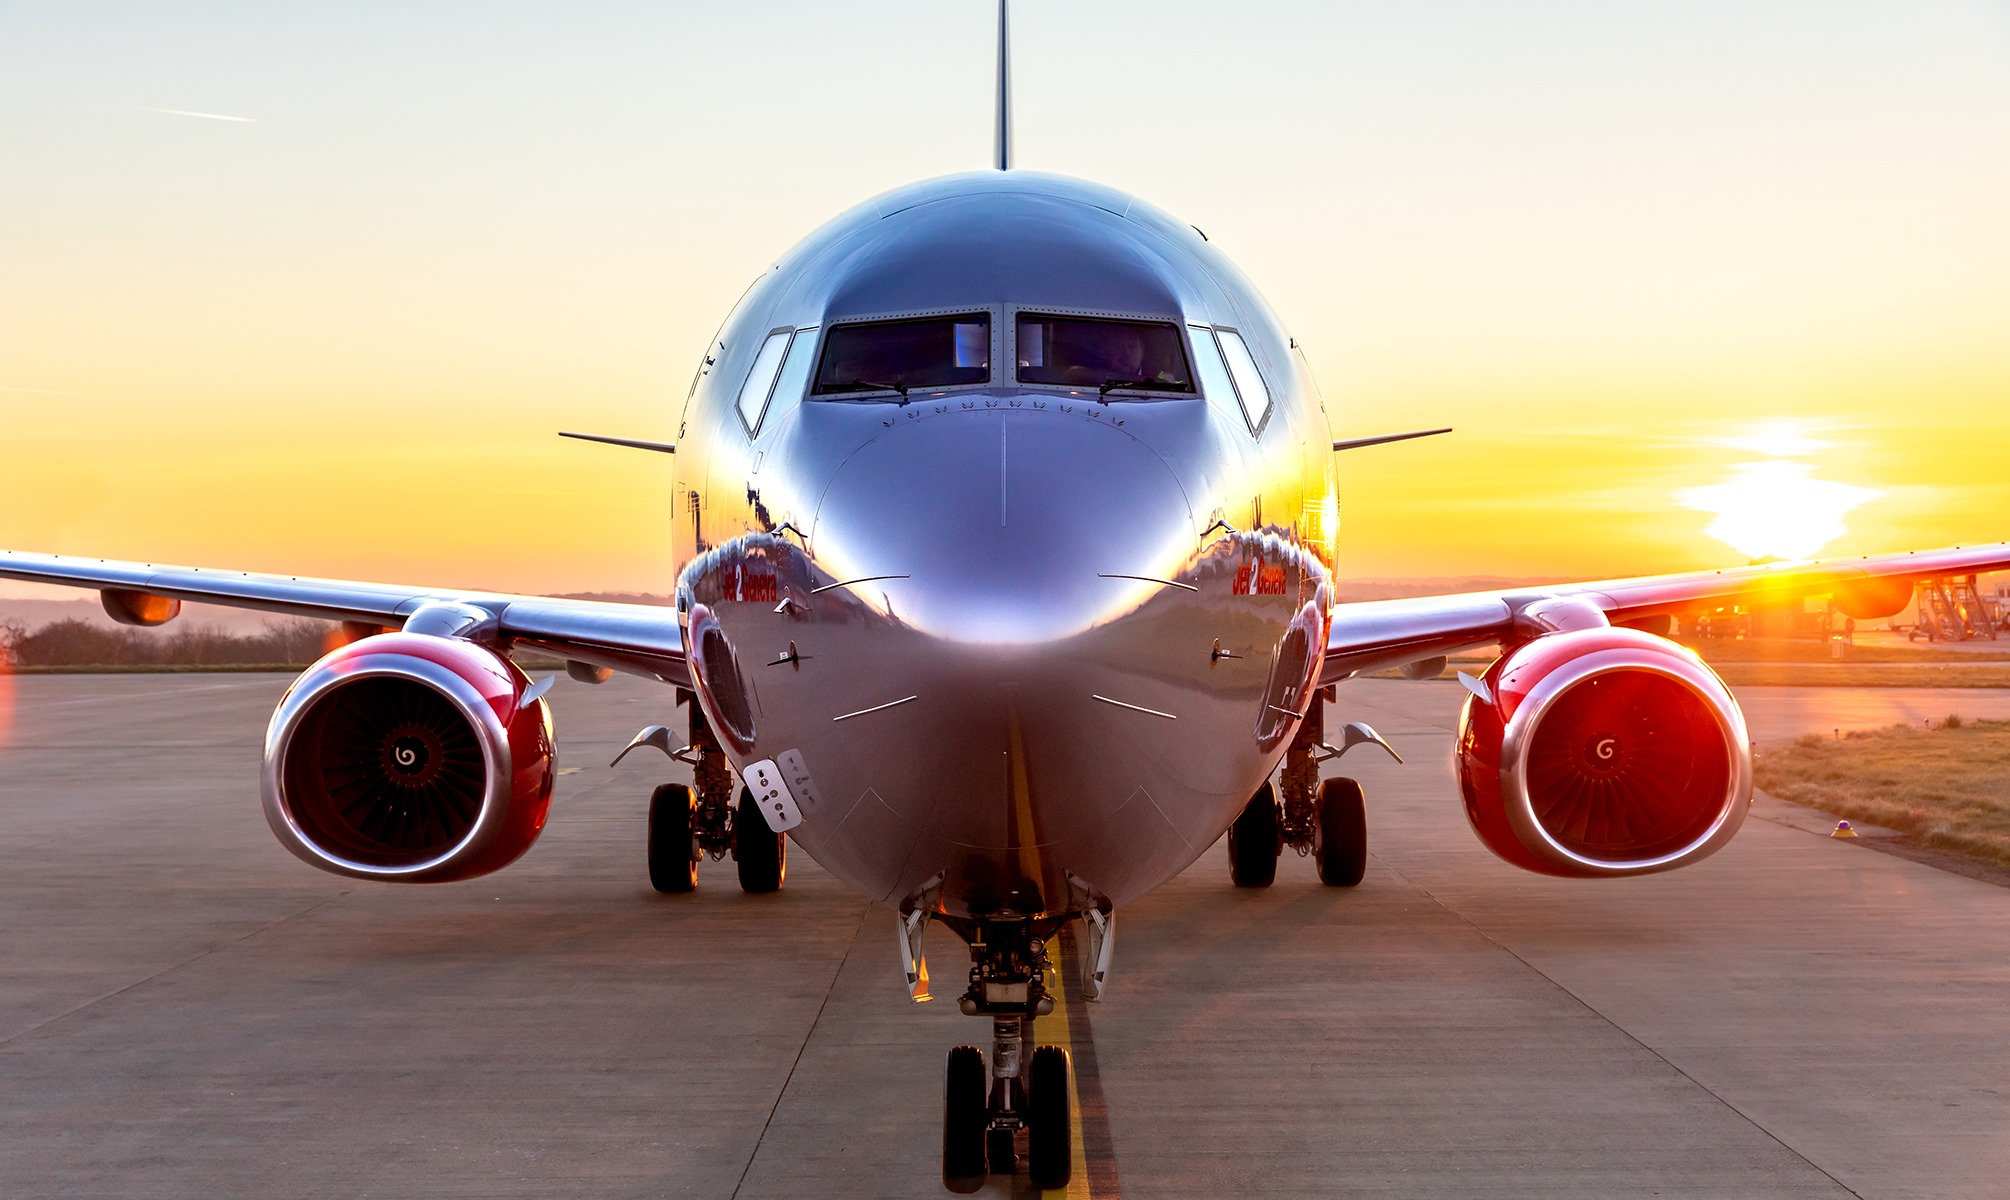 Getting Away with Jet2Holidays